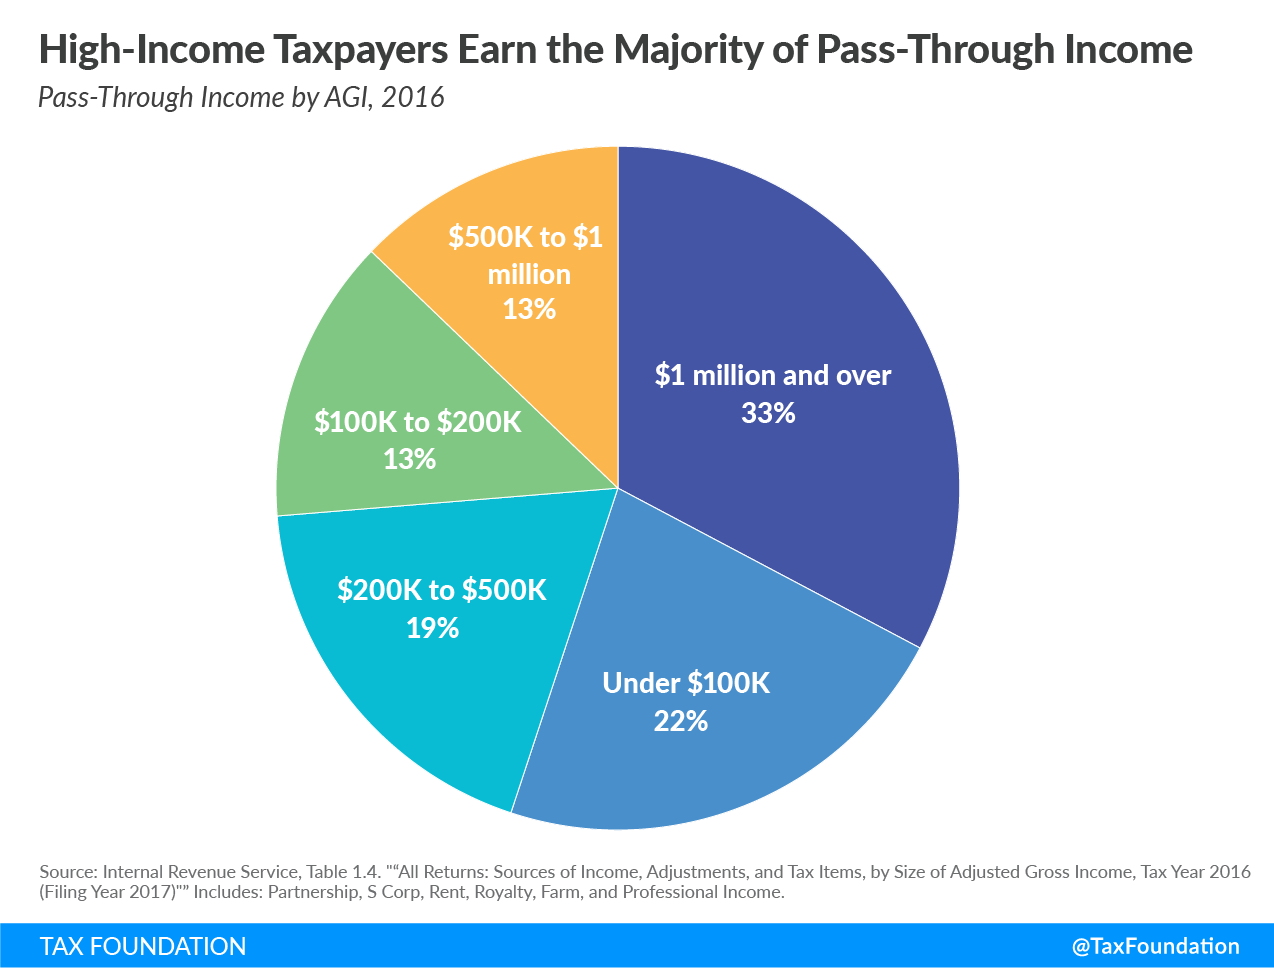 High-income taxpayers earn the majority of pass-through income pass-through business pass-through businesses